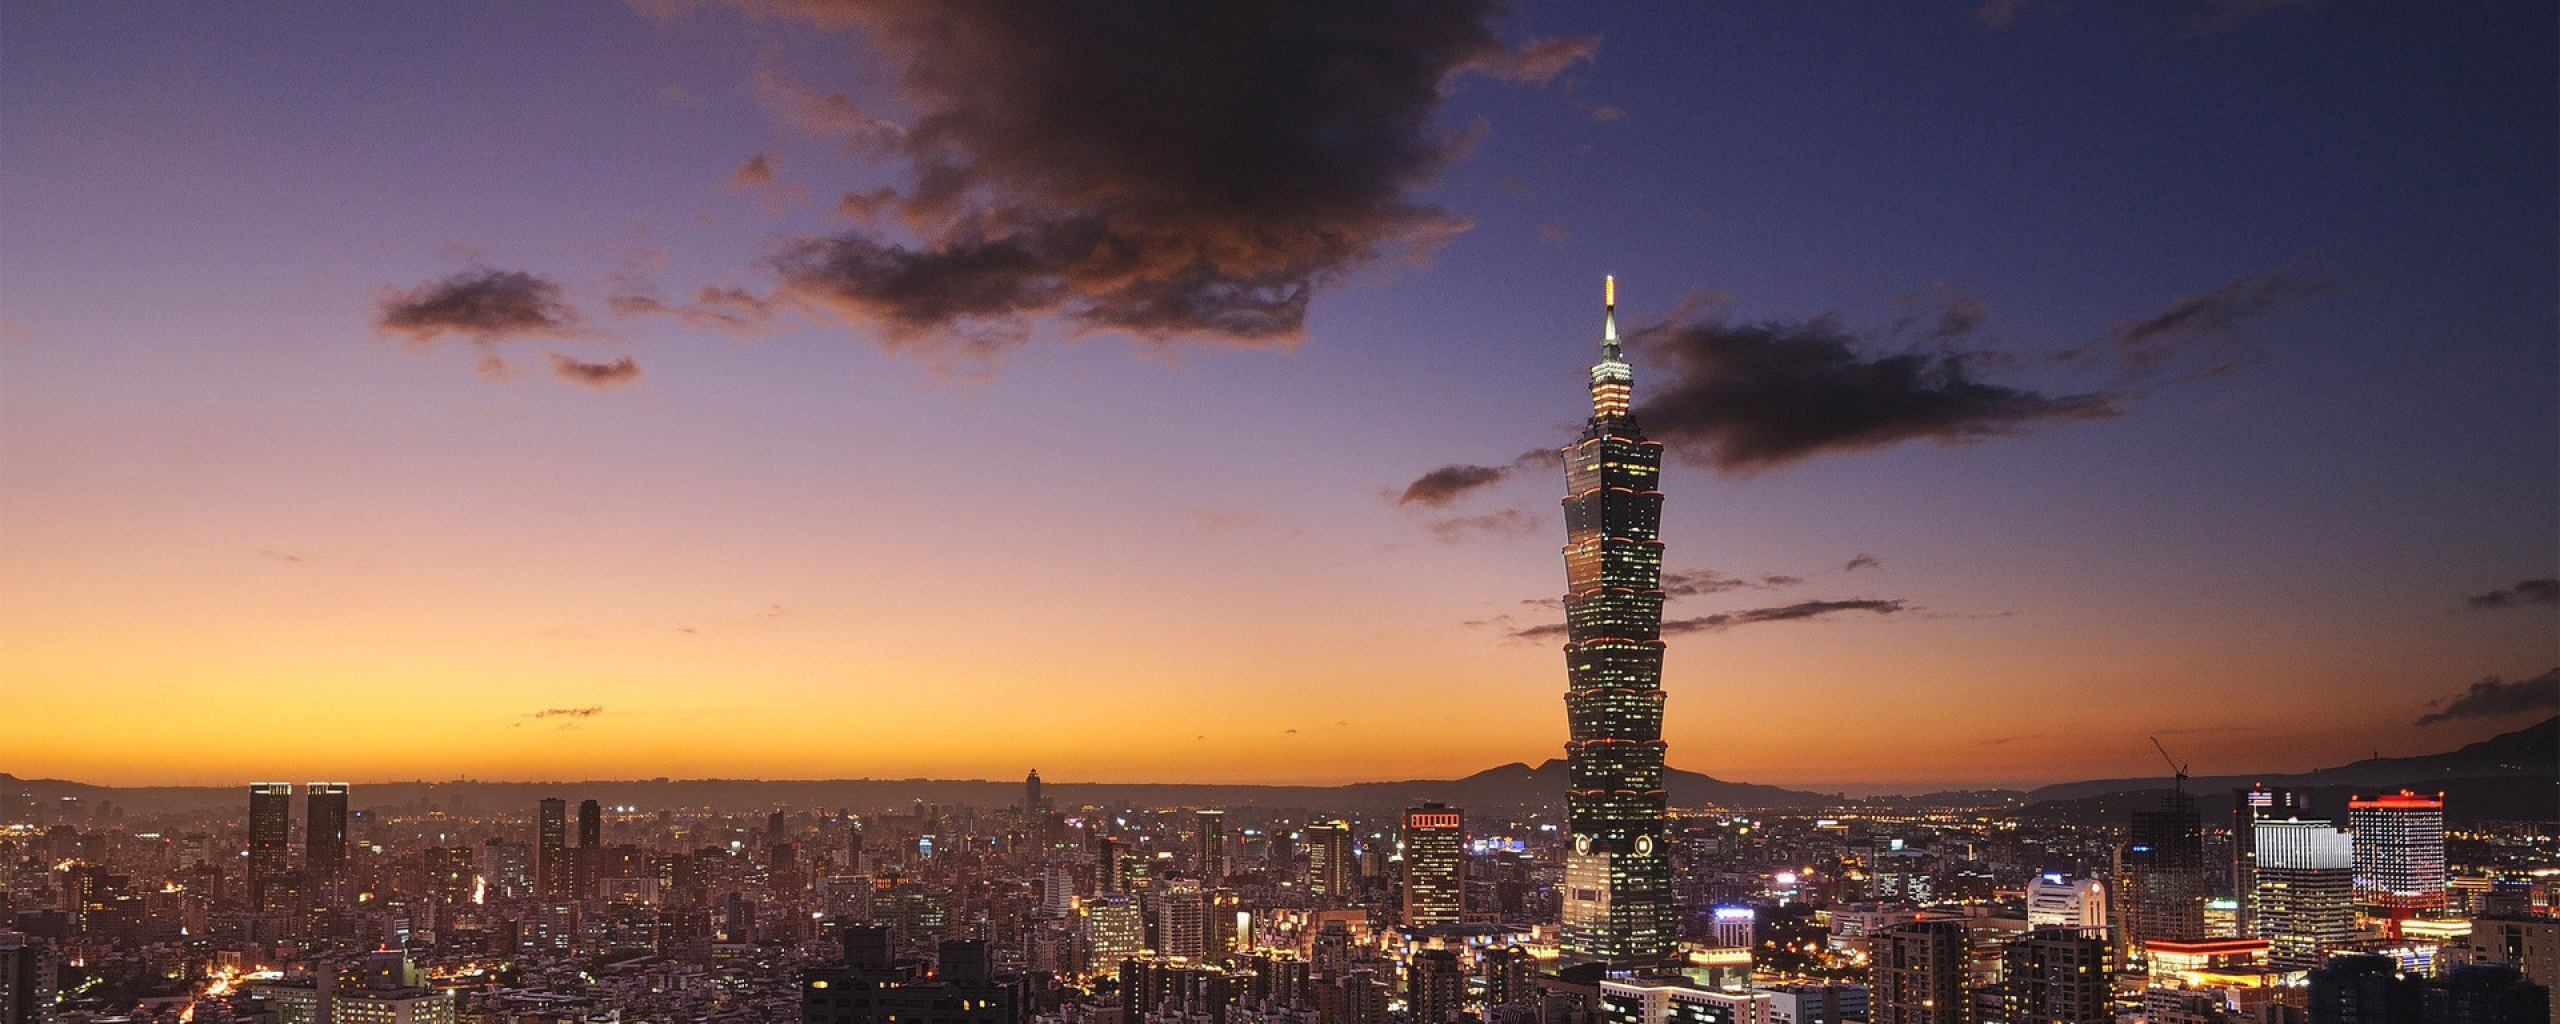 Taiwan Pictures